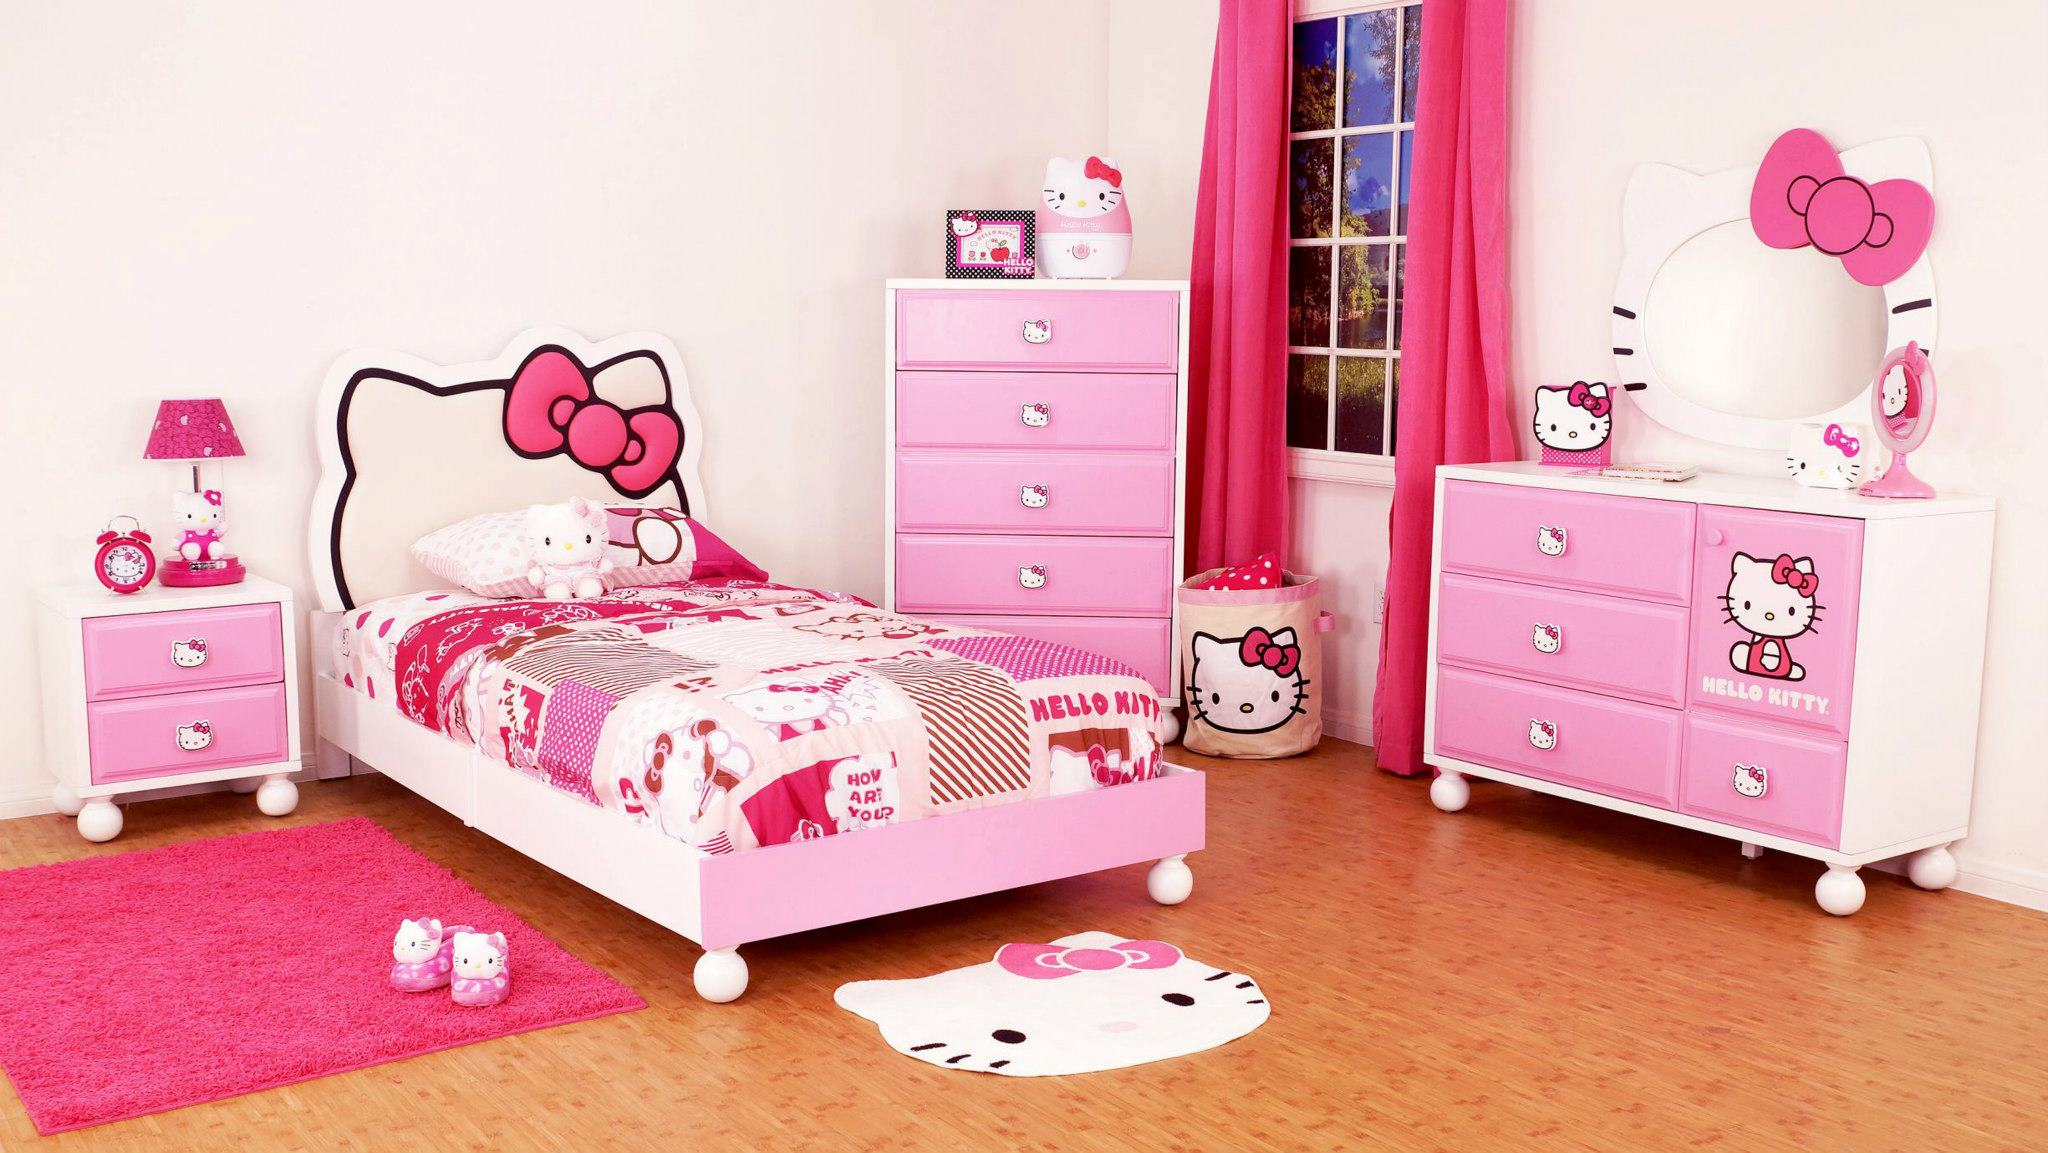 Hello kitty girls room designs for Girls bedroom designs images